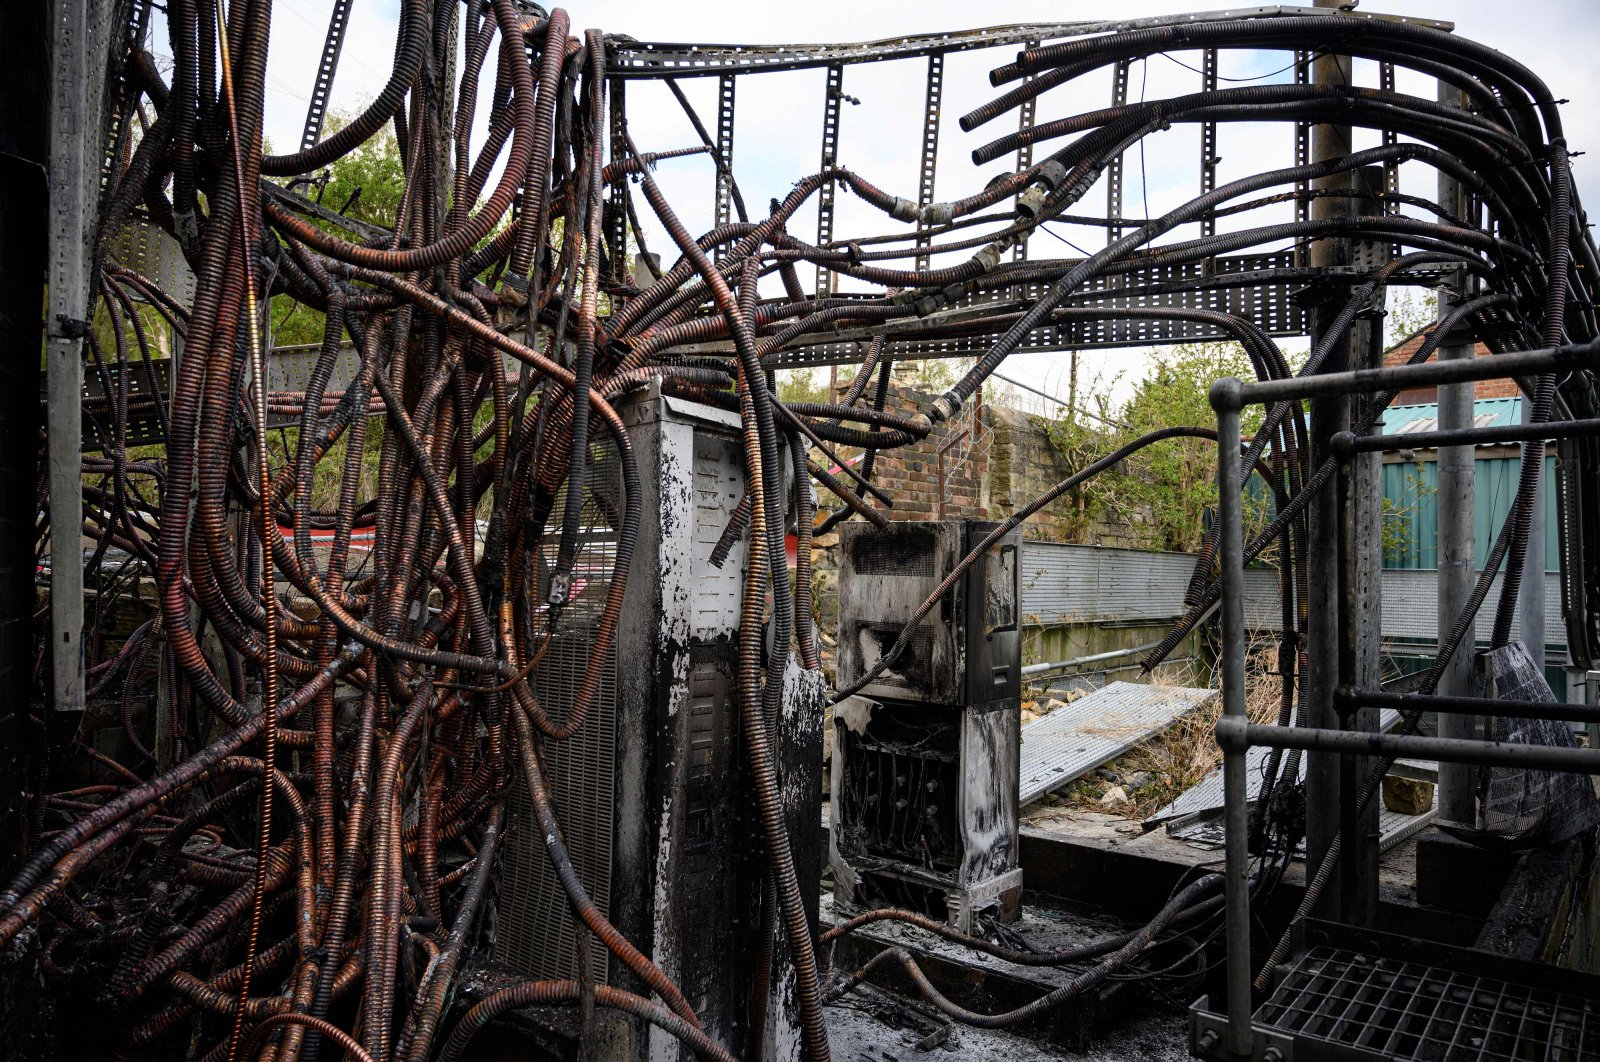 Damaged cabling and telecommunications equipment is pictured following a fire at a phone mast, attatched to the chimney at the converted Fearnleys Mill residential apartment block complex in Huddersfield, northern England, on April 17, 2020. It is not yet known what caused the mast, which is attached to a chimney at the Fearnleys Mill development, to go up in flames. But the fire comes after a number of mobile phone masts have been set on fire amid claims of a link between 5G and the novel coronavirus COVID-19. (AFP Photo)